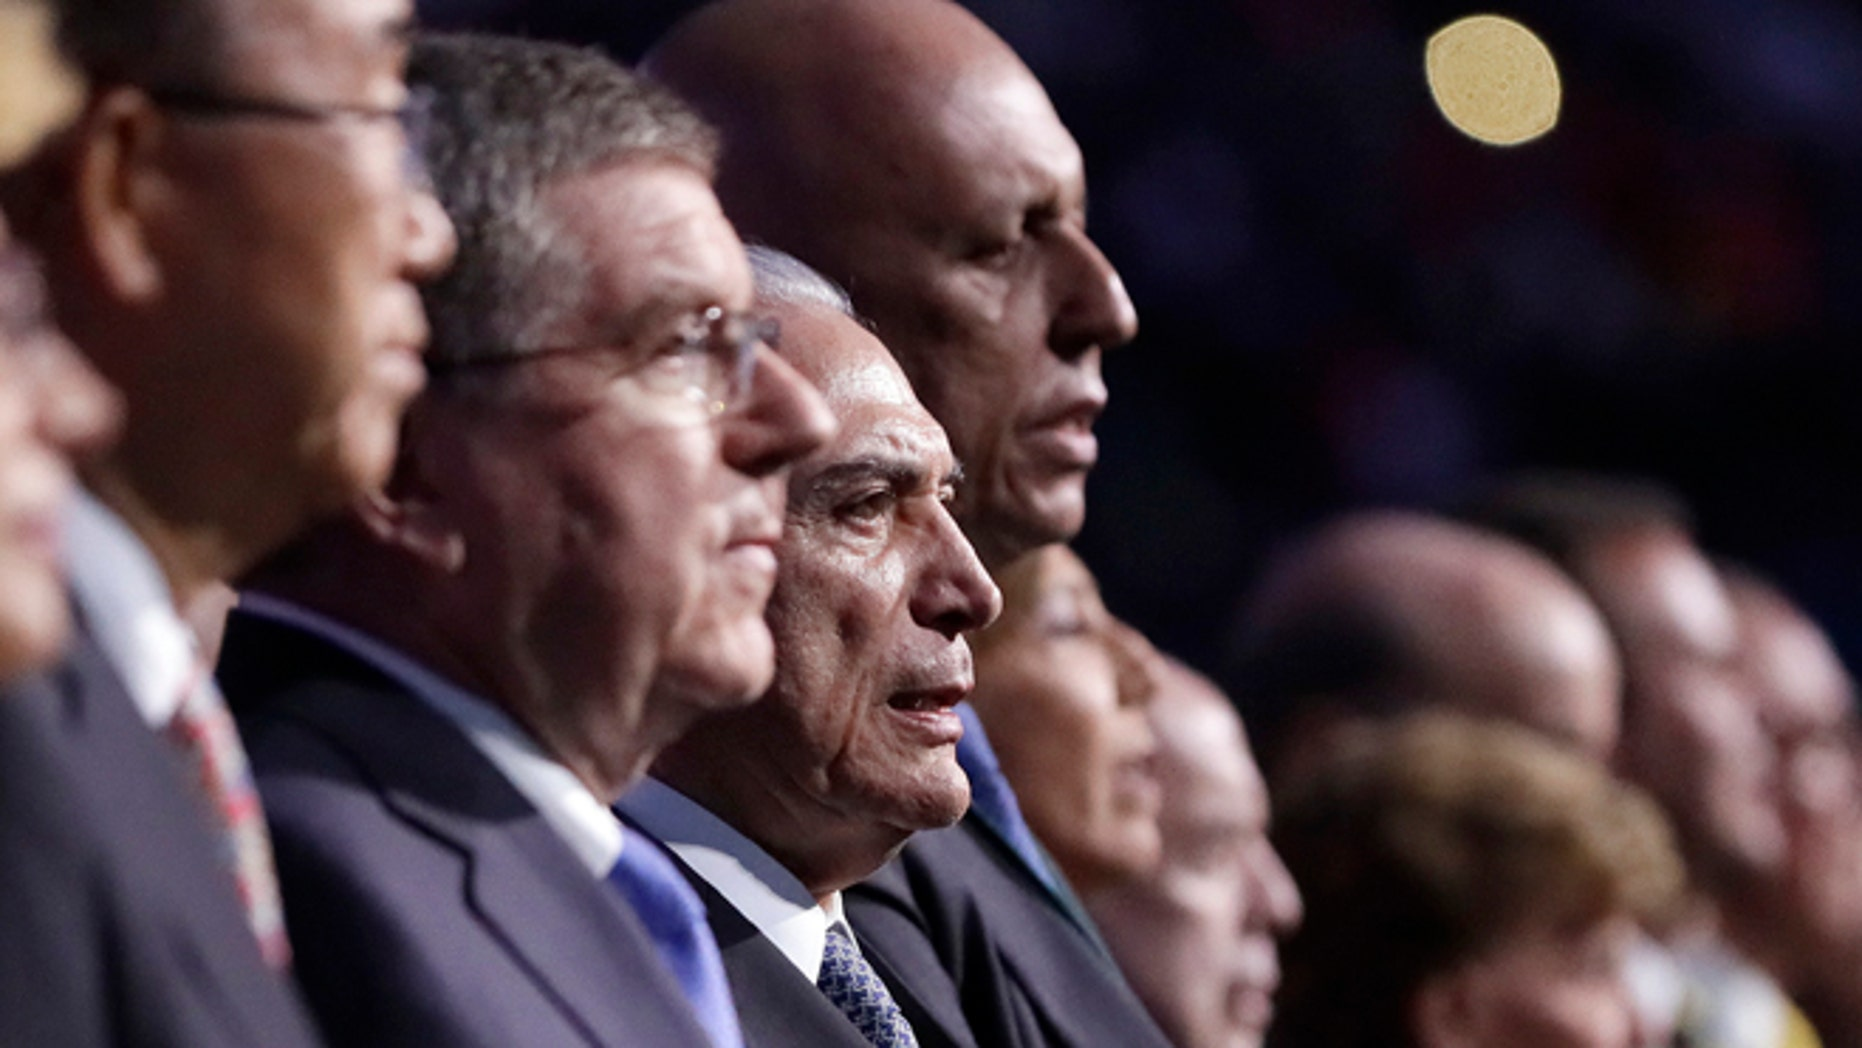 Brazil interim President Michel Temer, third from left, sings the Brazilian national anthem during the opening ceremony for the 2016 Summer Olympics in Rio de Janeiro, Brazil, Friday, Aug. 5, 2016. (AP Photo/Mark Humphrey, Pool)